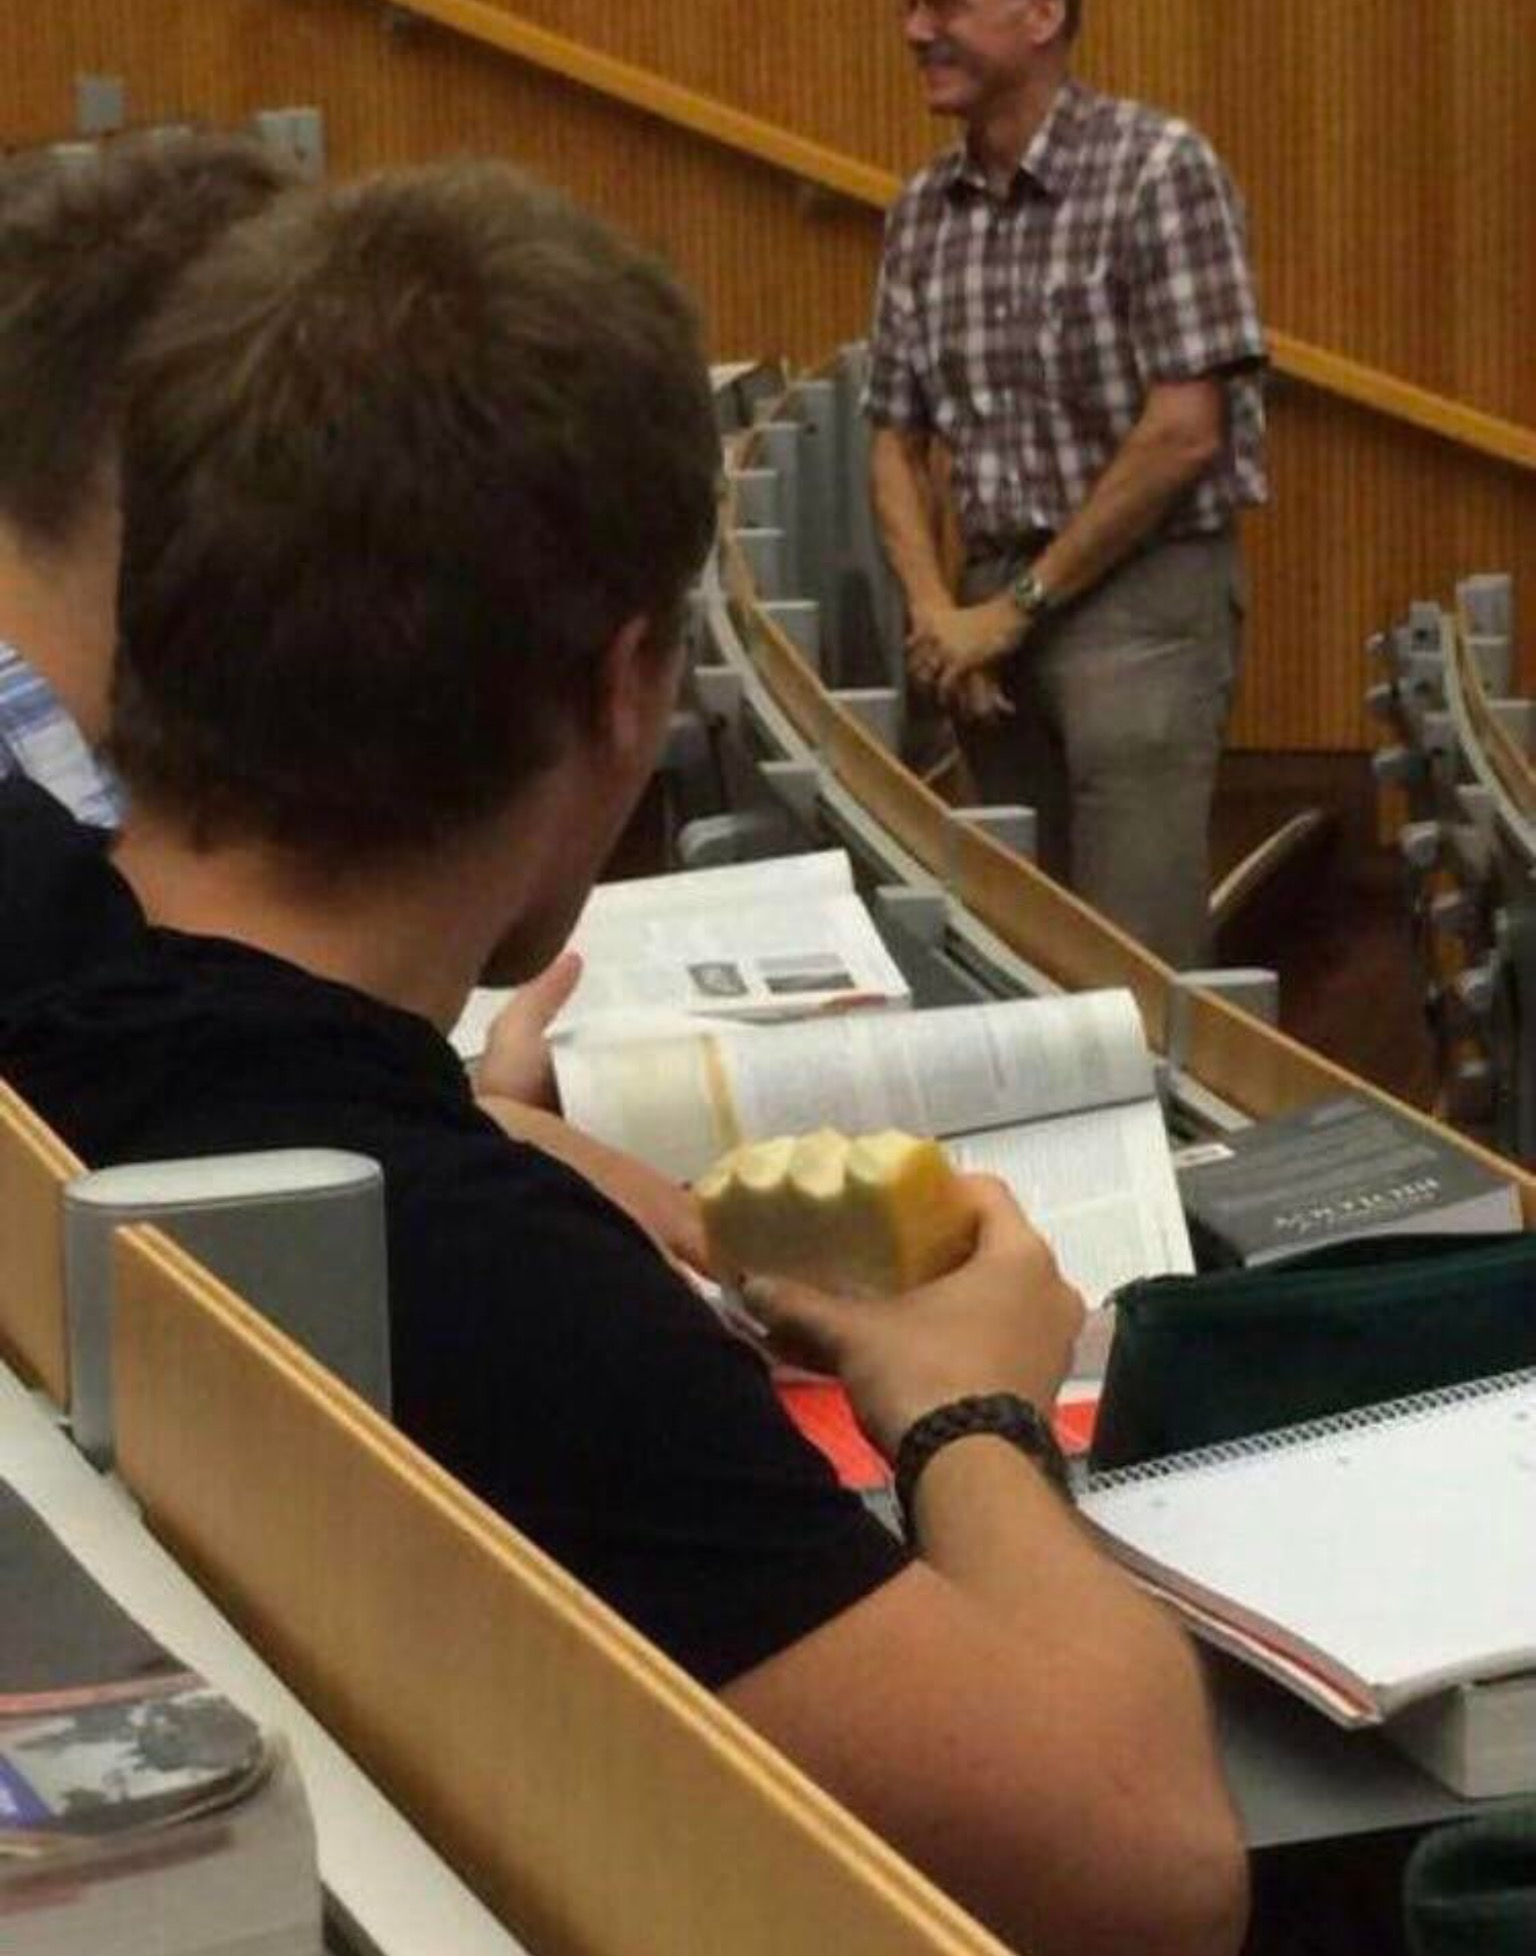 Eating a cheese wheel in class